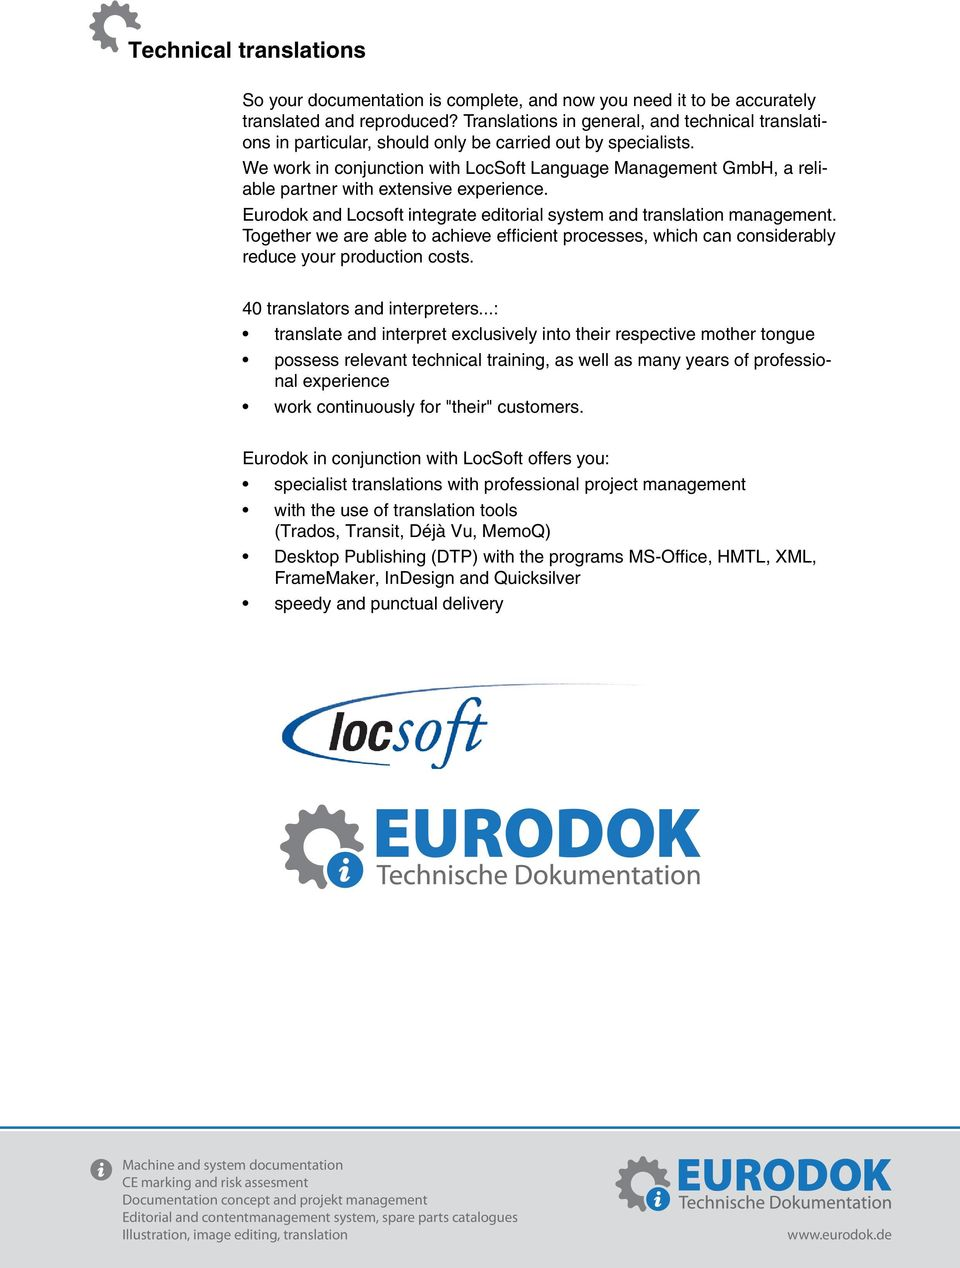 We work in conjunction with LocSoft Language Management GmbH, a reliable partner with extensive experience. Eurodok and Locsoft integrate editorial system and translation management.